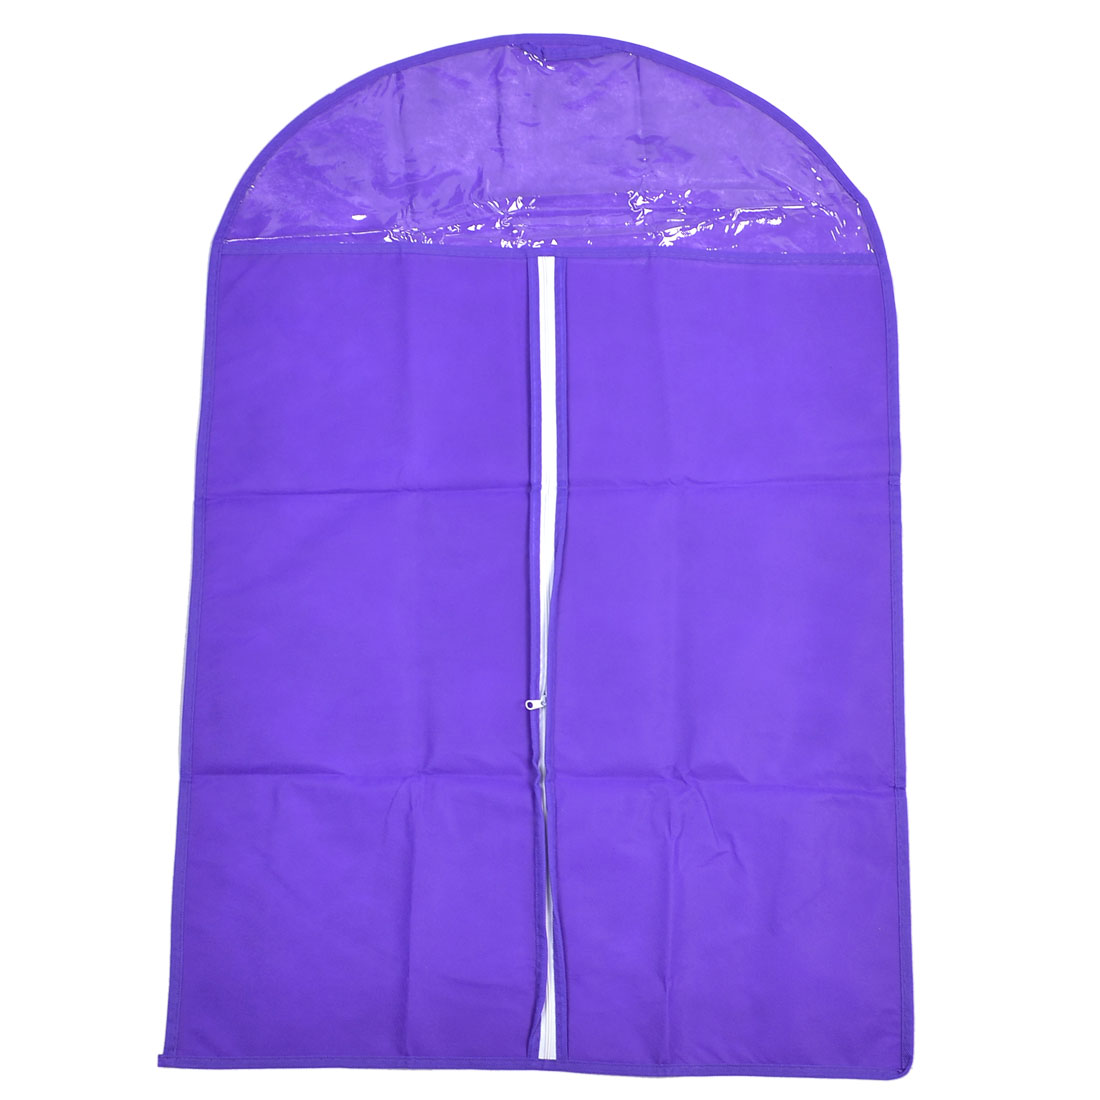 "23.6"" x 34.6"" White Zipper Closure Anti Dust Storage Suit Cover Bag Purple"